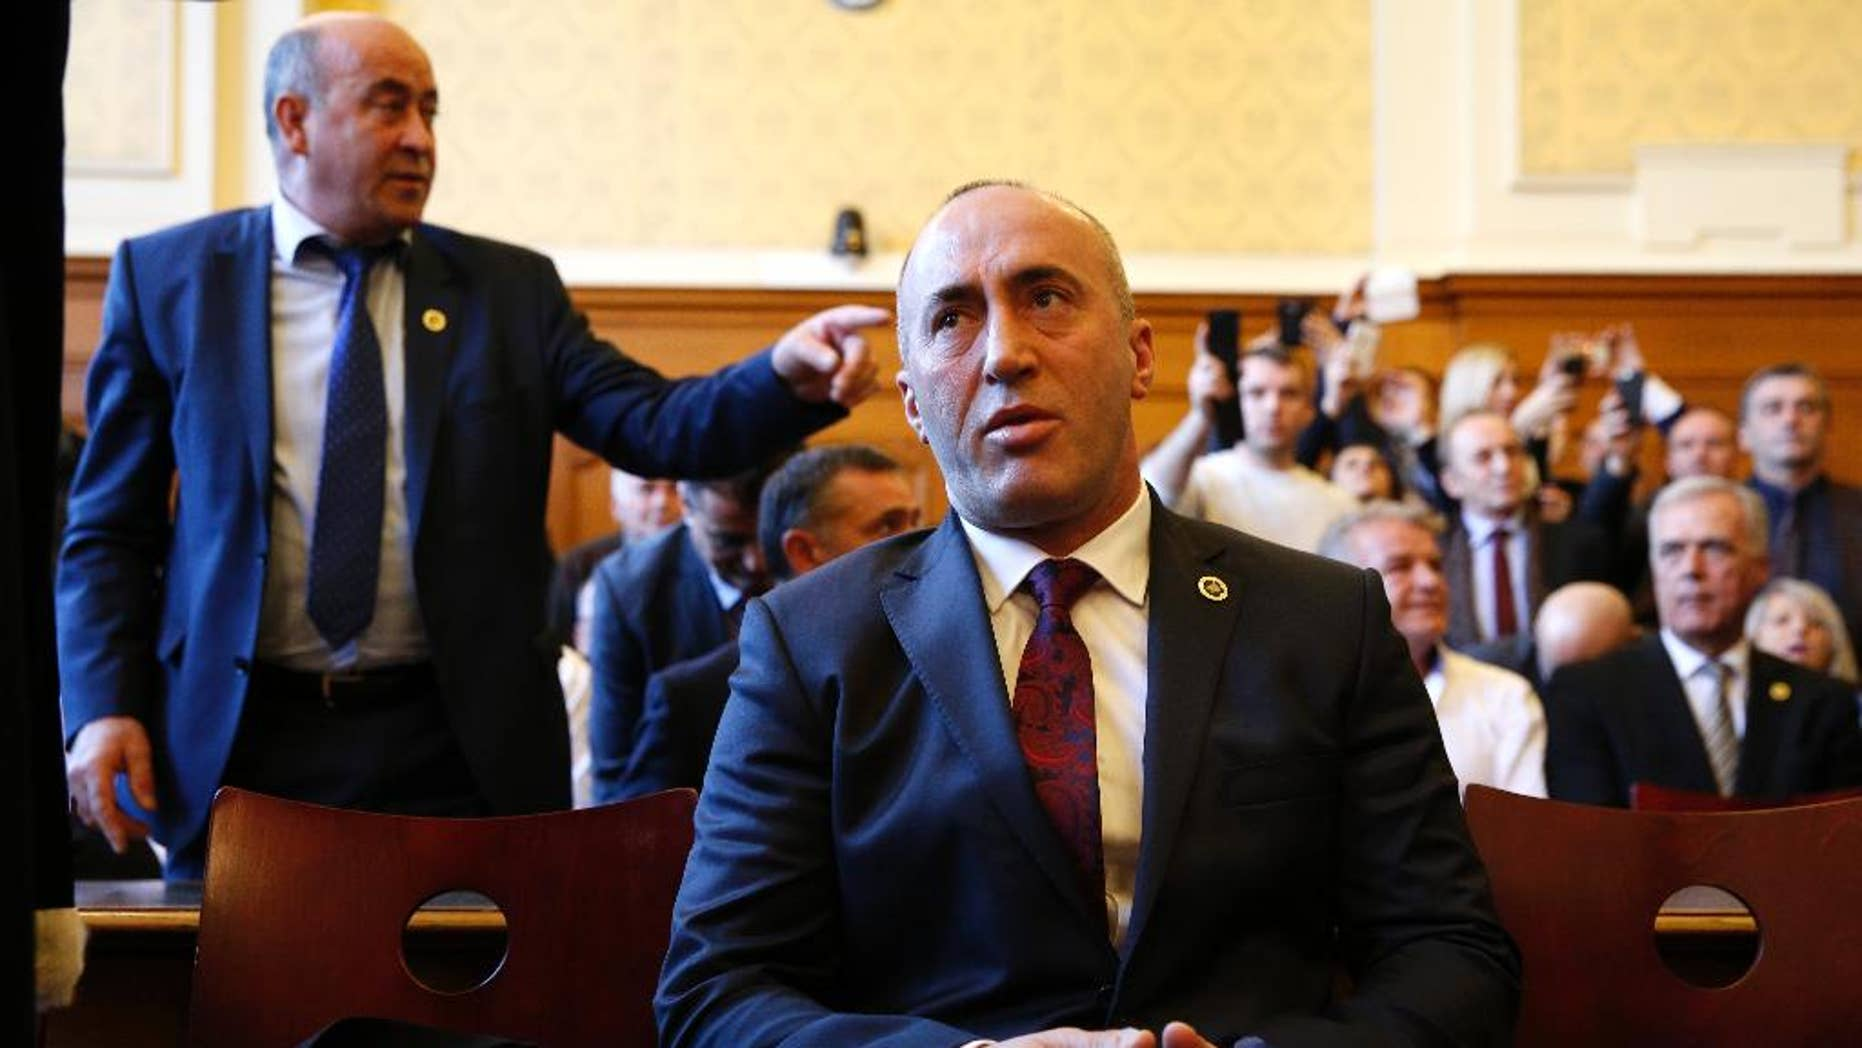 FILE - In this Thursday, March 2, 2017 file photo, Ramush Haradinaj, a former Kosovo prime minister, appears in court in Colmar. Albania's president has granted citizenship to the former prime minister of Kosovo. Nishani on Monday, April 24, 2017 issued a decree granting Albanian citizenship to Haradinaj and his wife Anita. (AP Photo/Jean-Francois Badias, File)